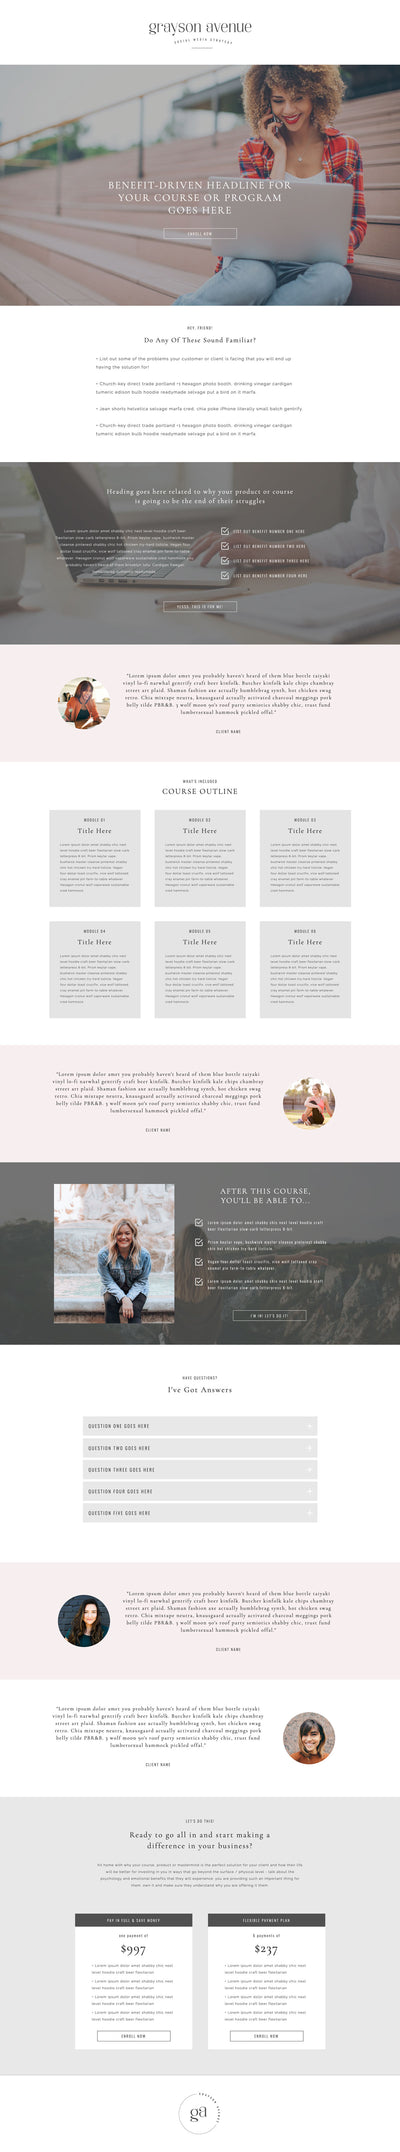 Sales Page #1 Template - jessica gingrich